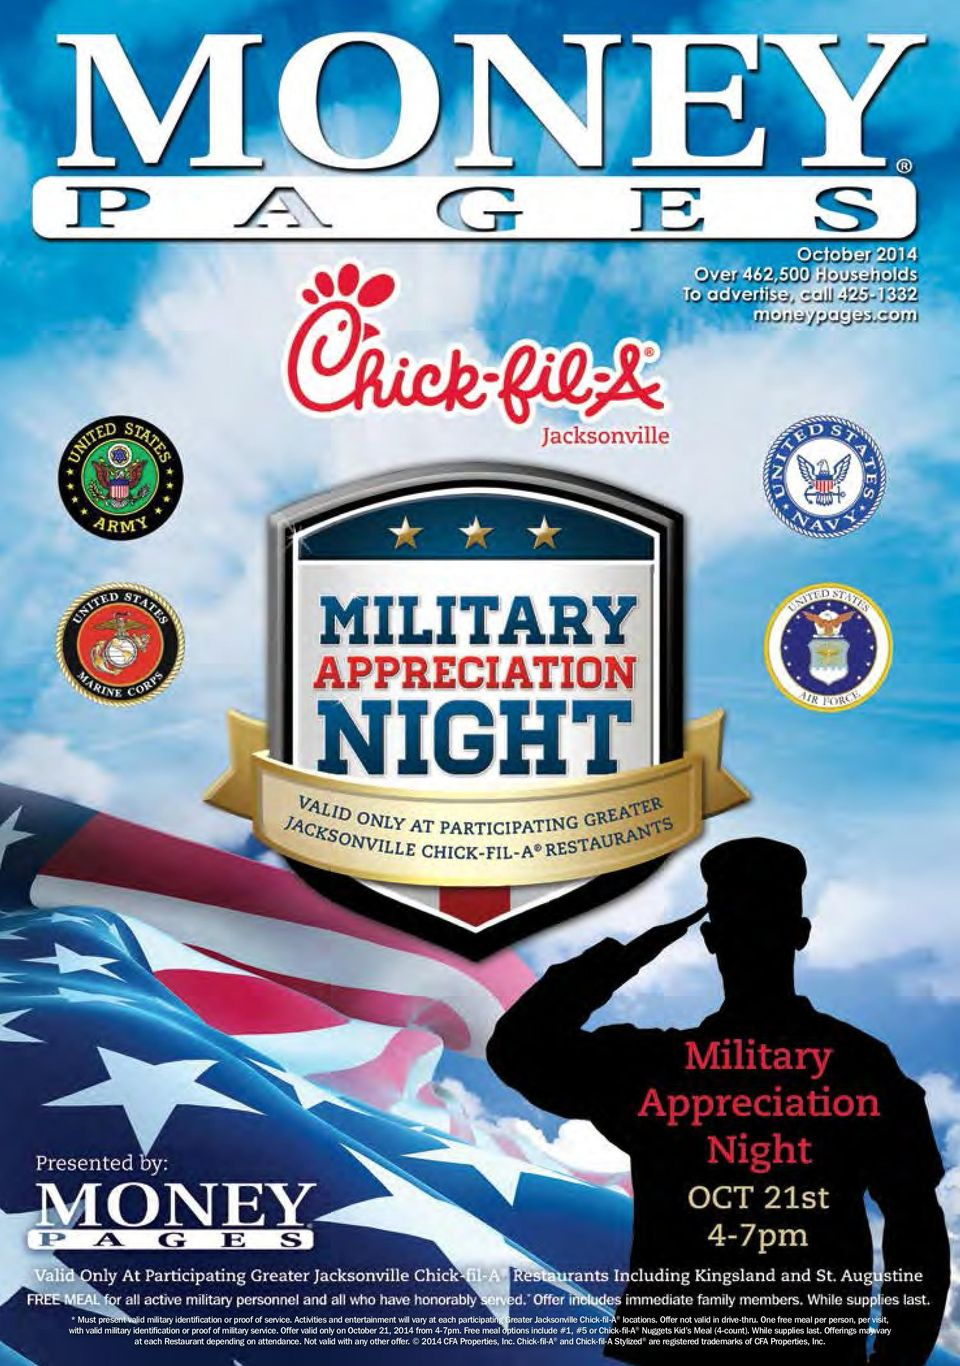 One free meal per person, per visit, with valid military identification or proof of military service. Offer valid only on October 21, 2014 from 4-7pm.